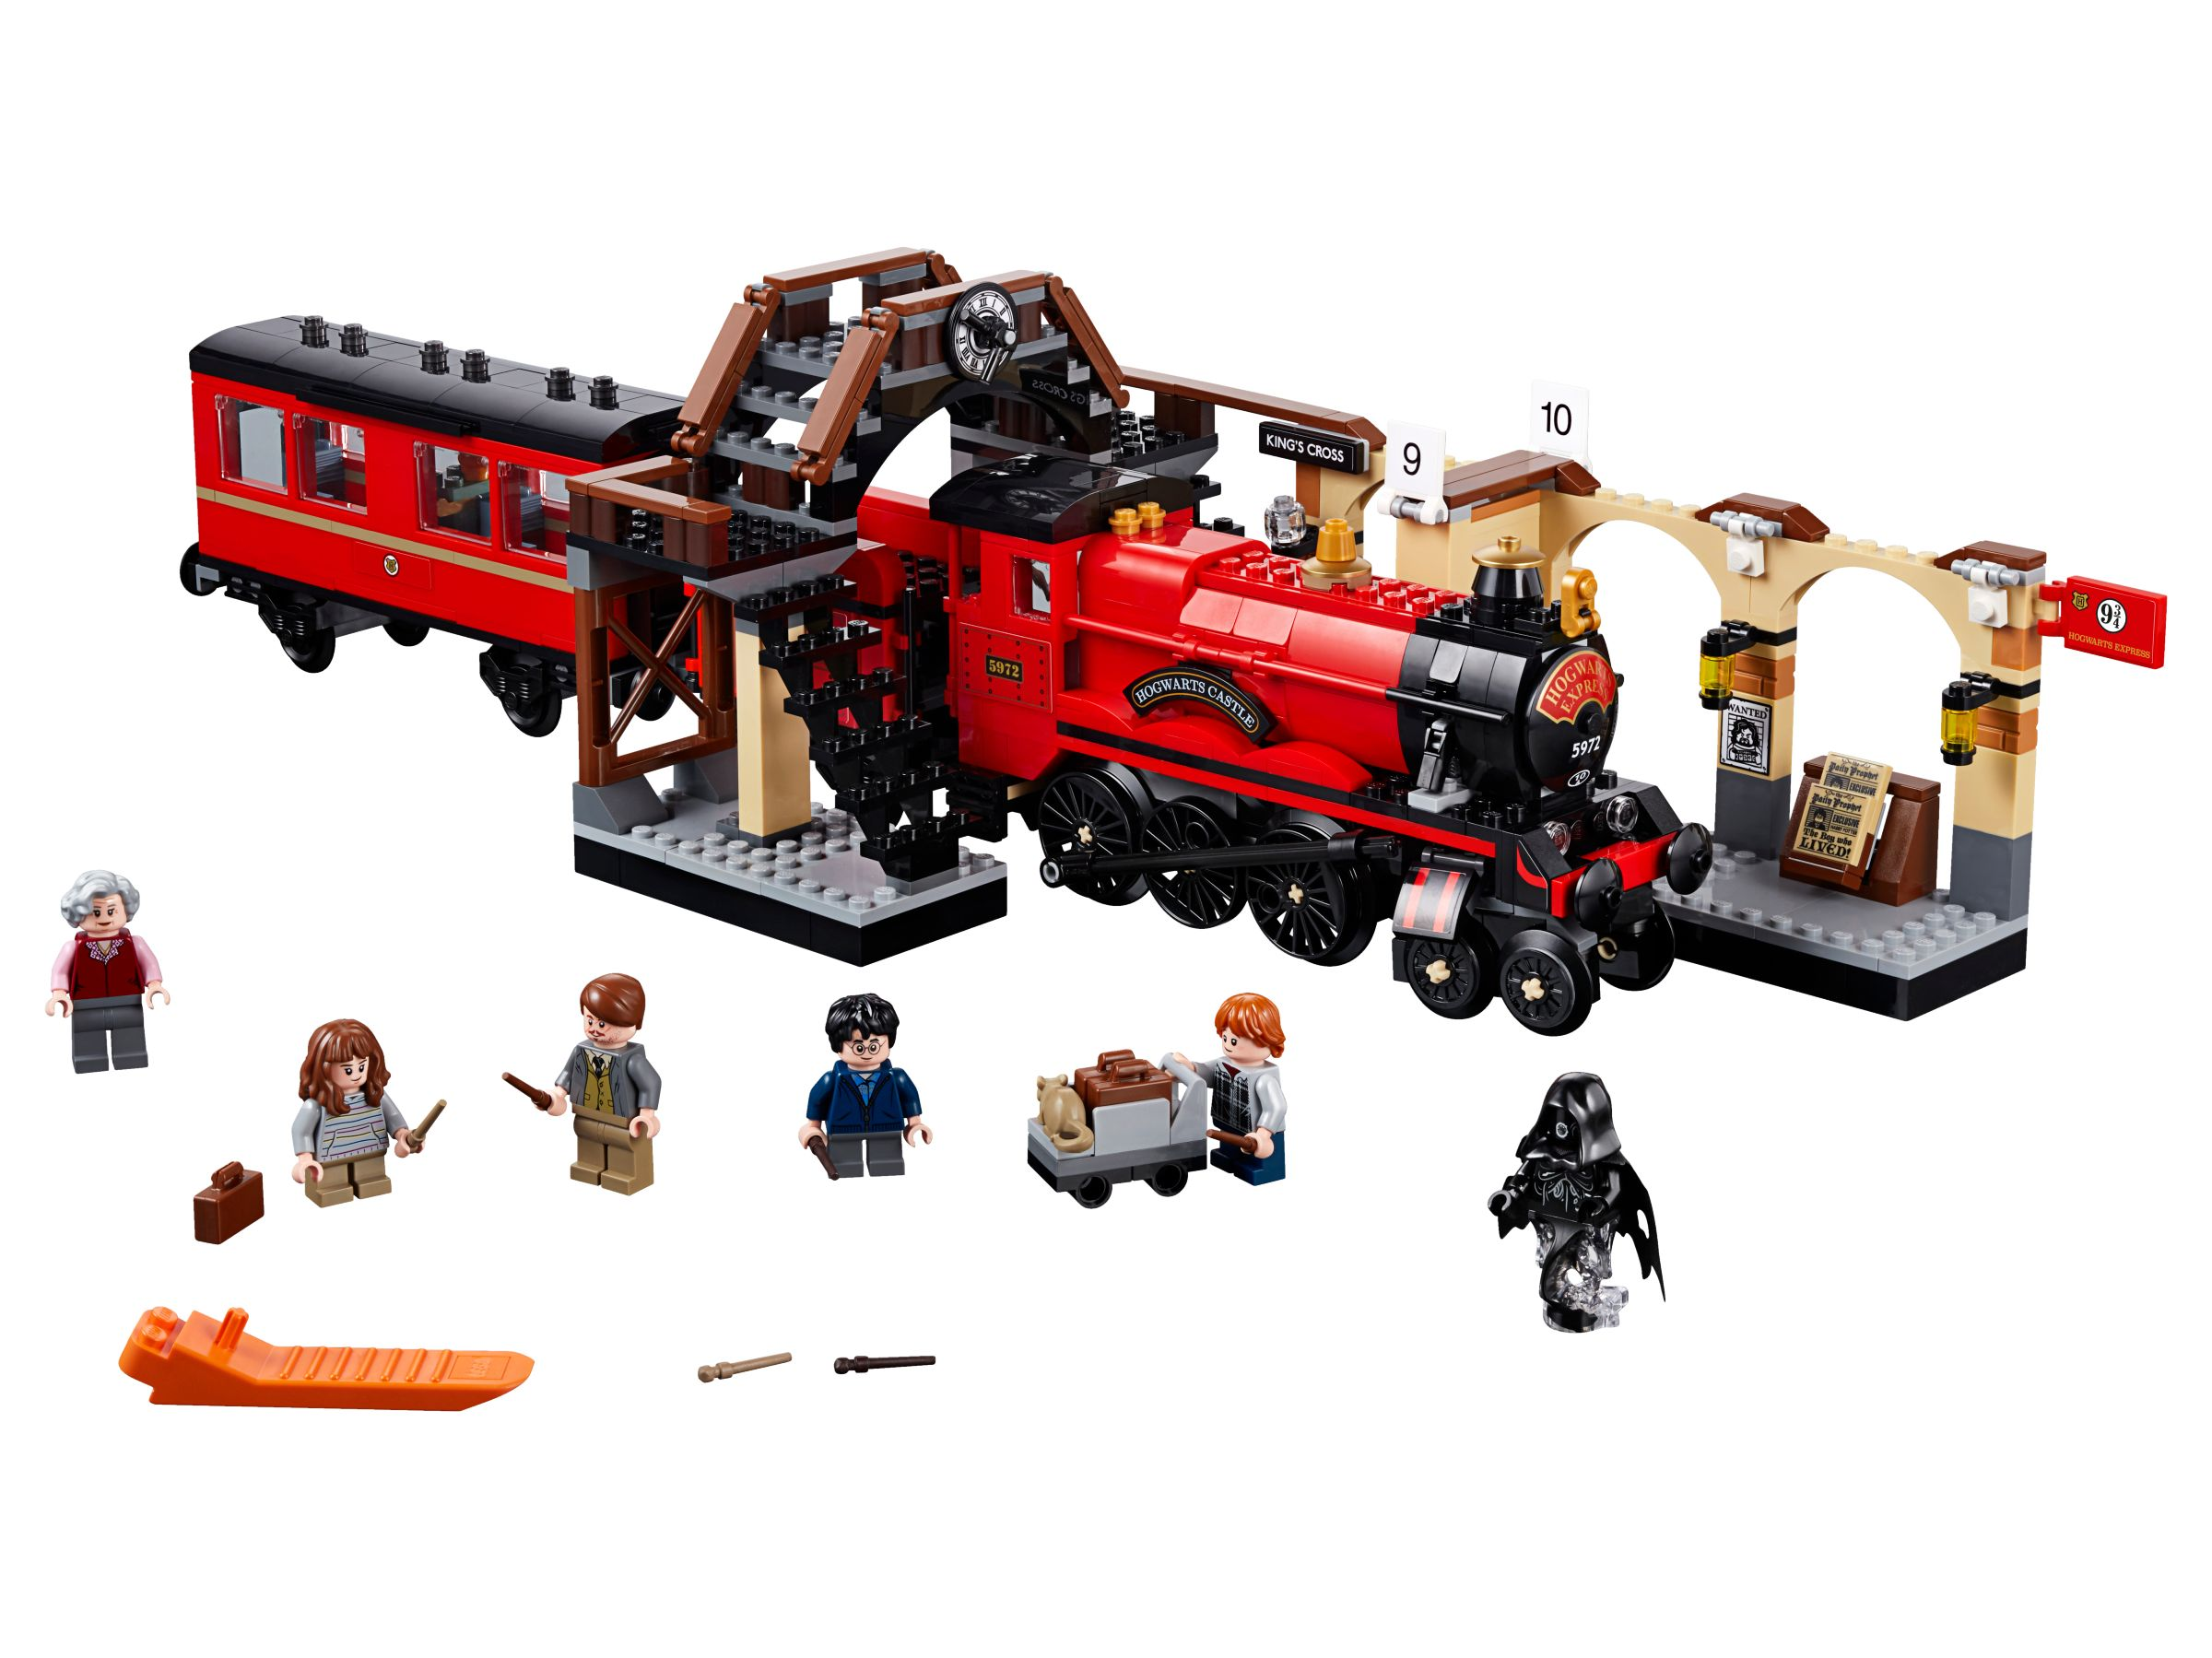 LEGO Harry Potter 75955 Hogwarts™ Express